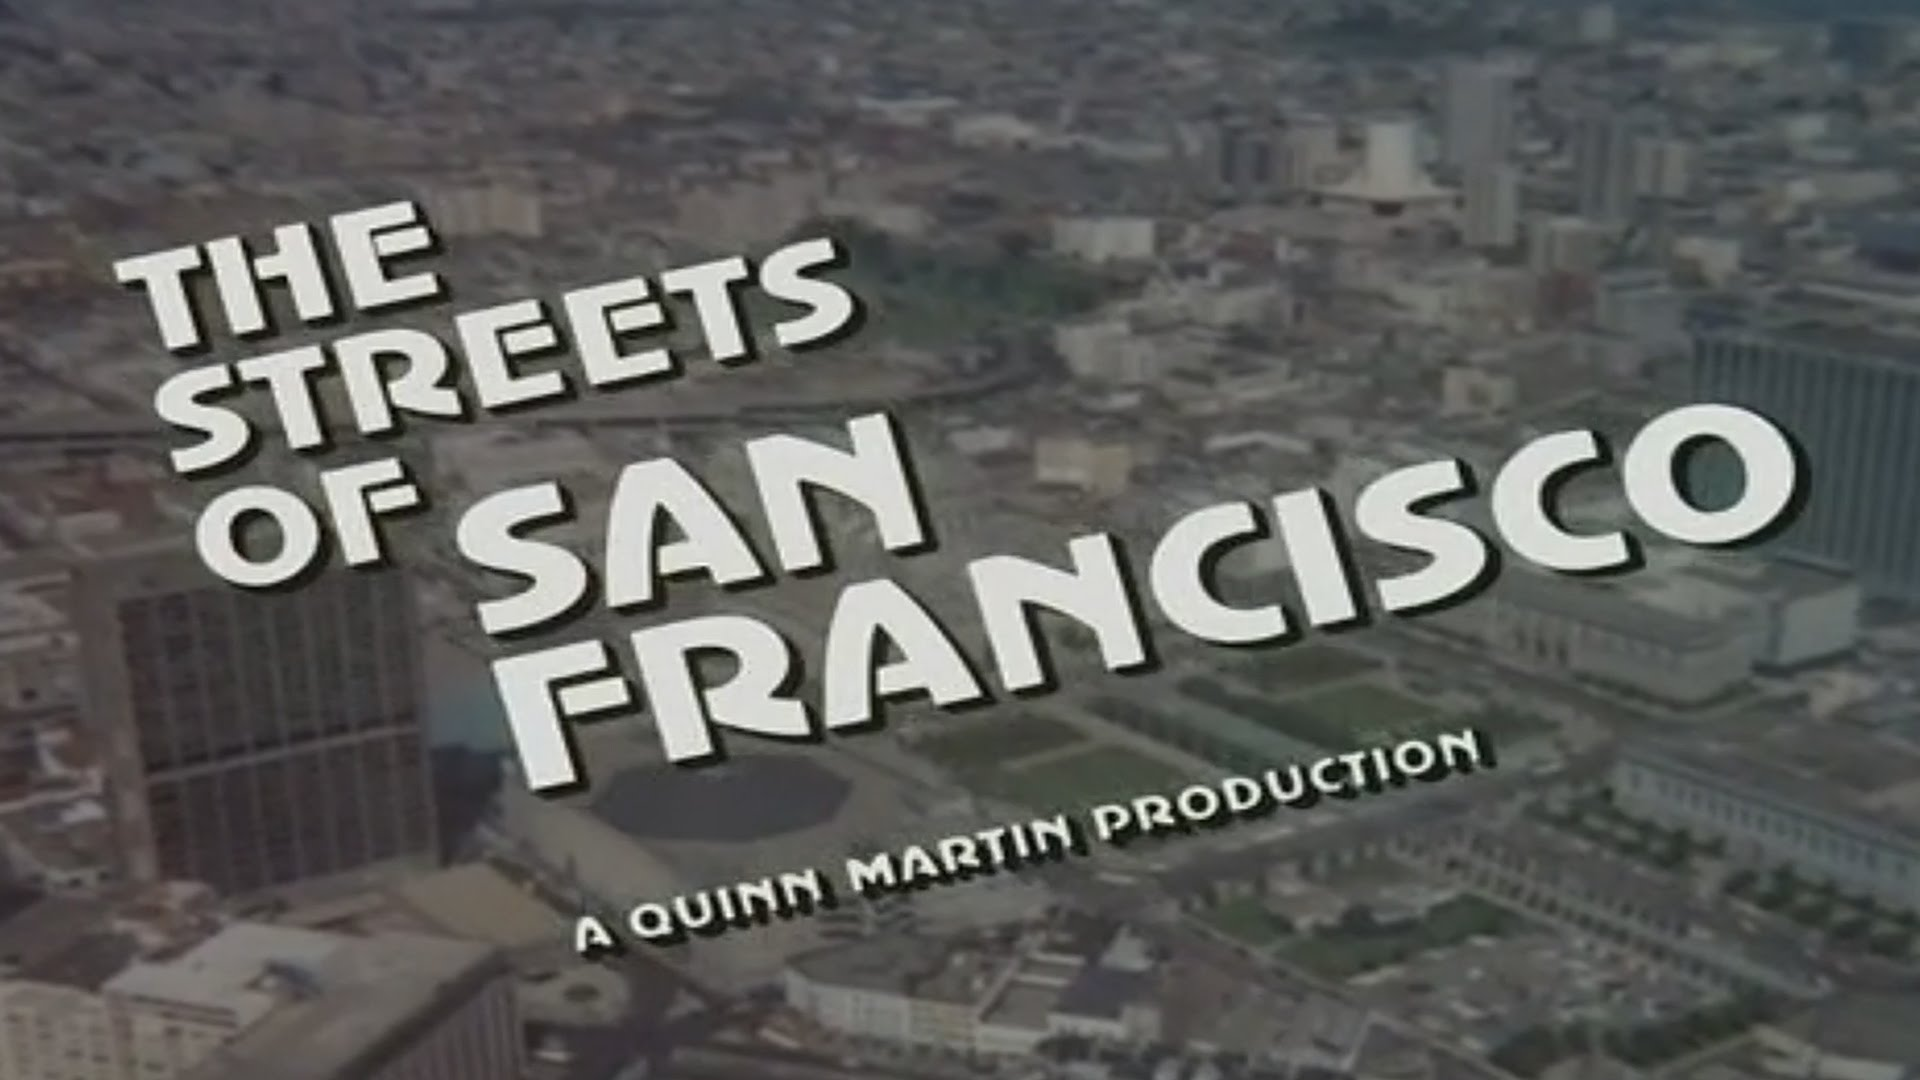 streets of san francisco title font